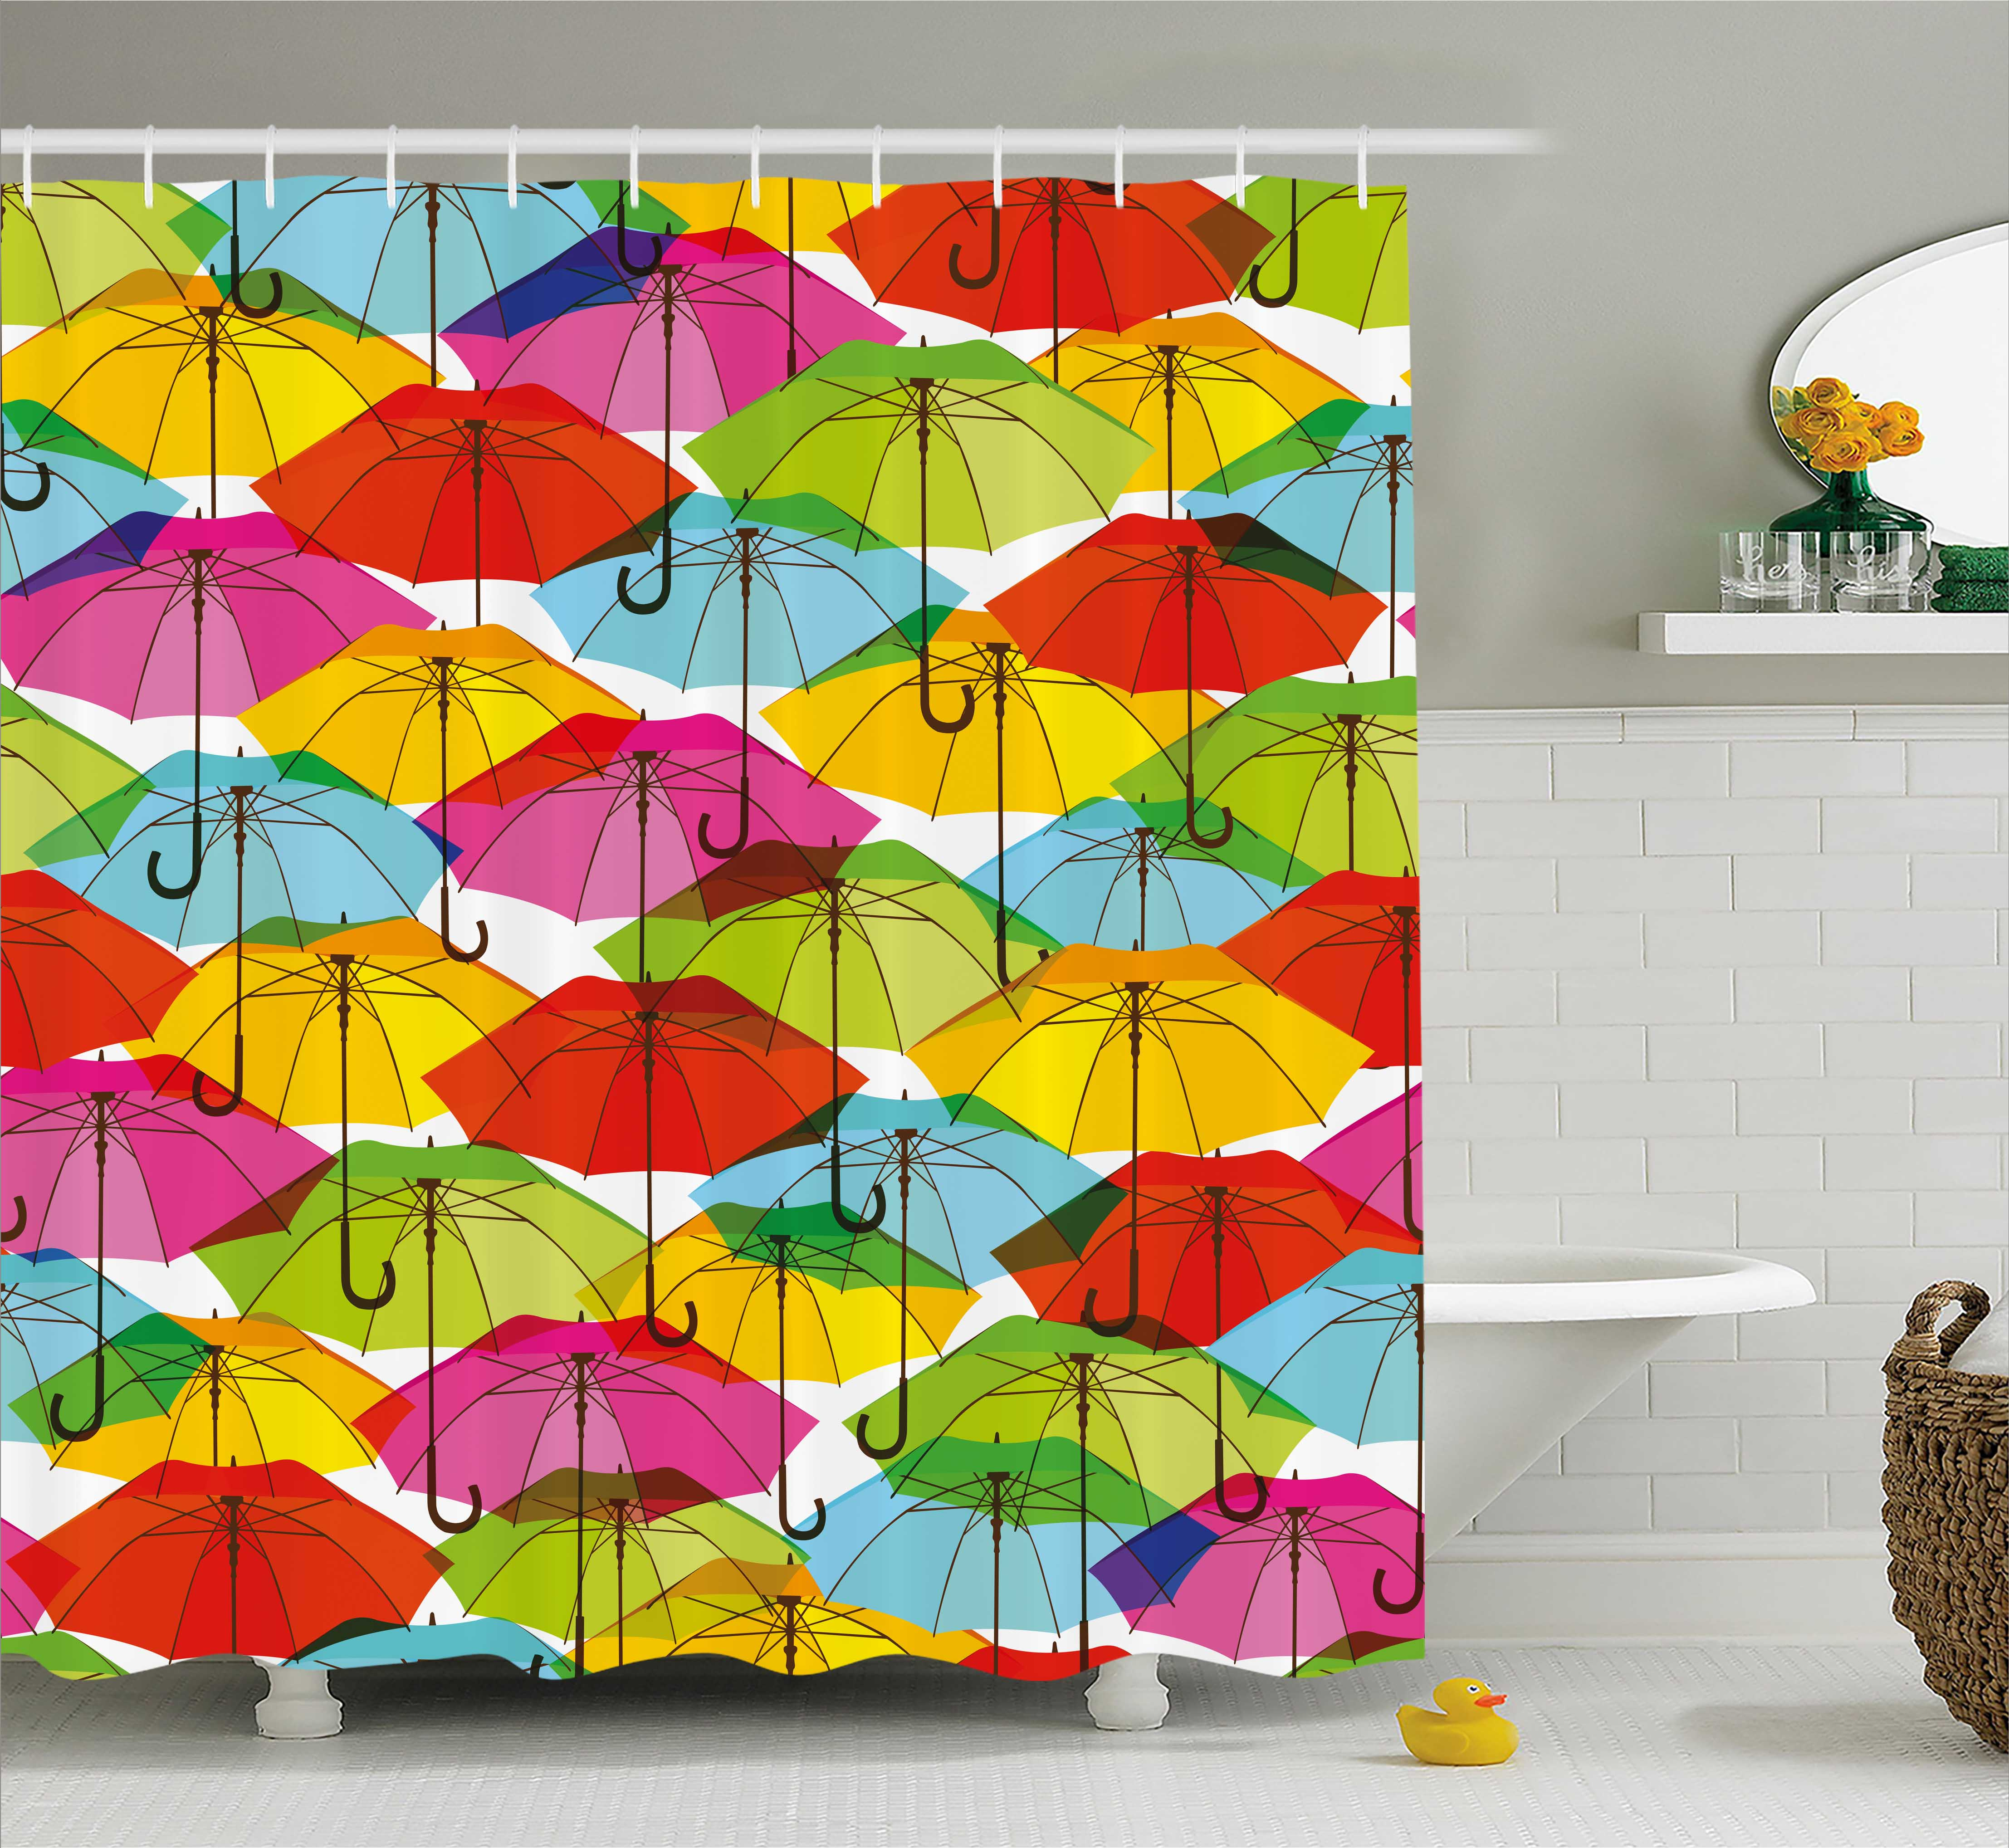 Modern Shower Curtain, Colorful Umbrella Figures in Vibrant Tones Abstract Rain Themed Artistic Display, Fabric Bathroom Set with Hooks, 69W X 75L Inches Long, Multicolor, by Ambesonne